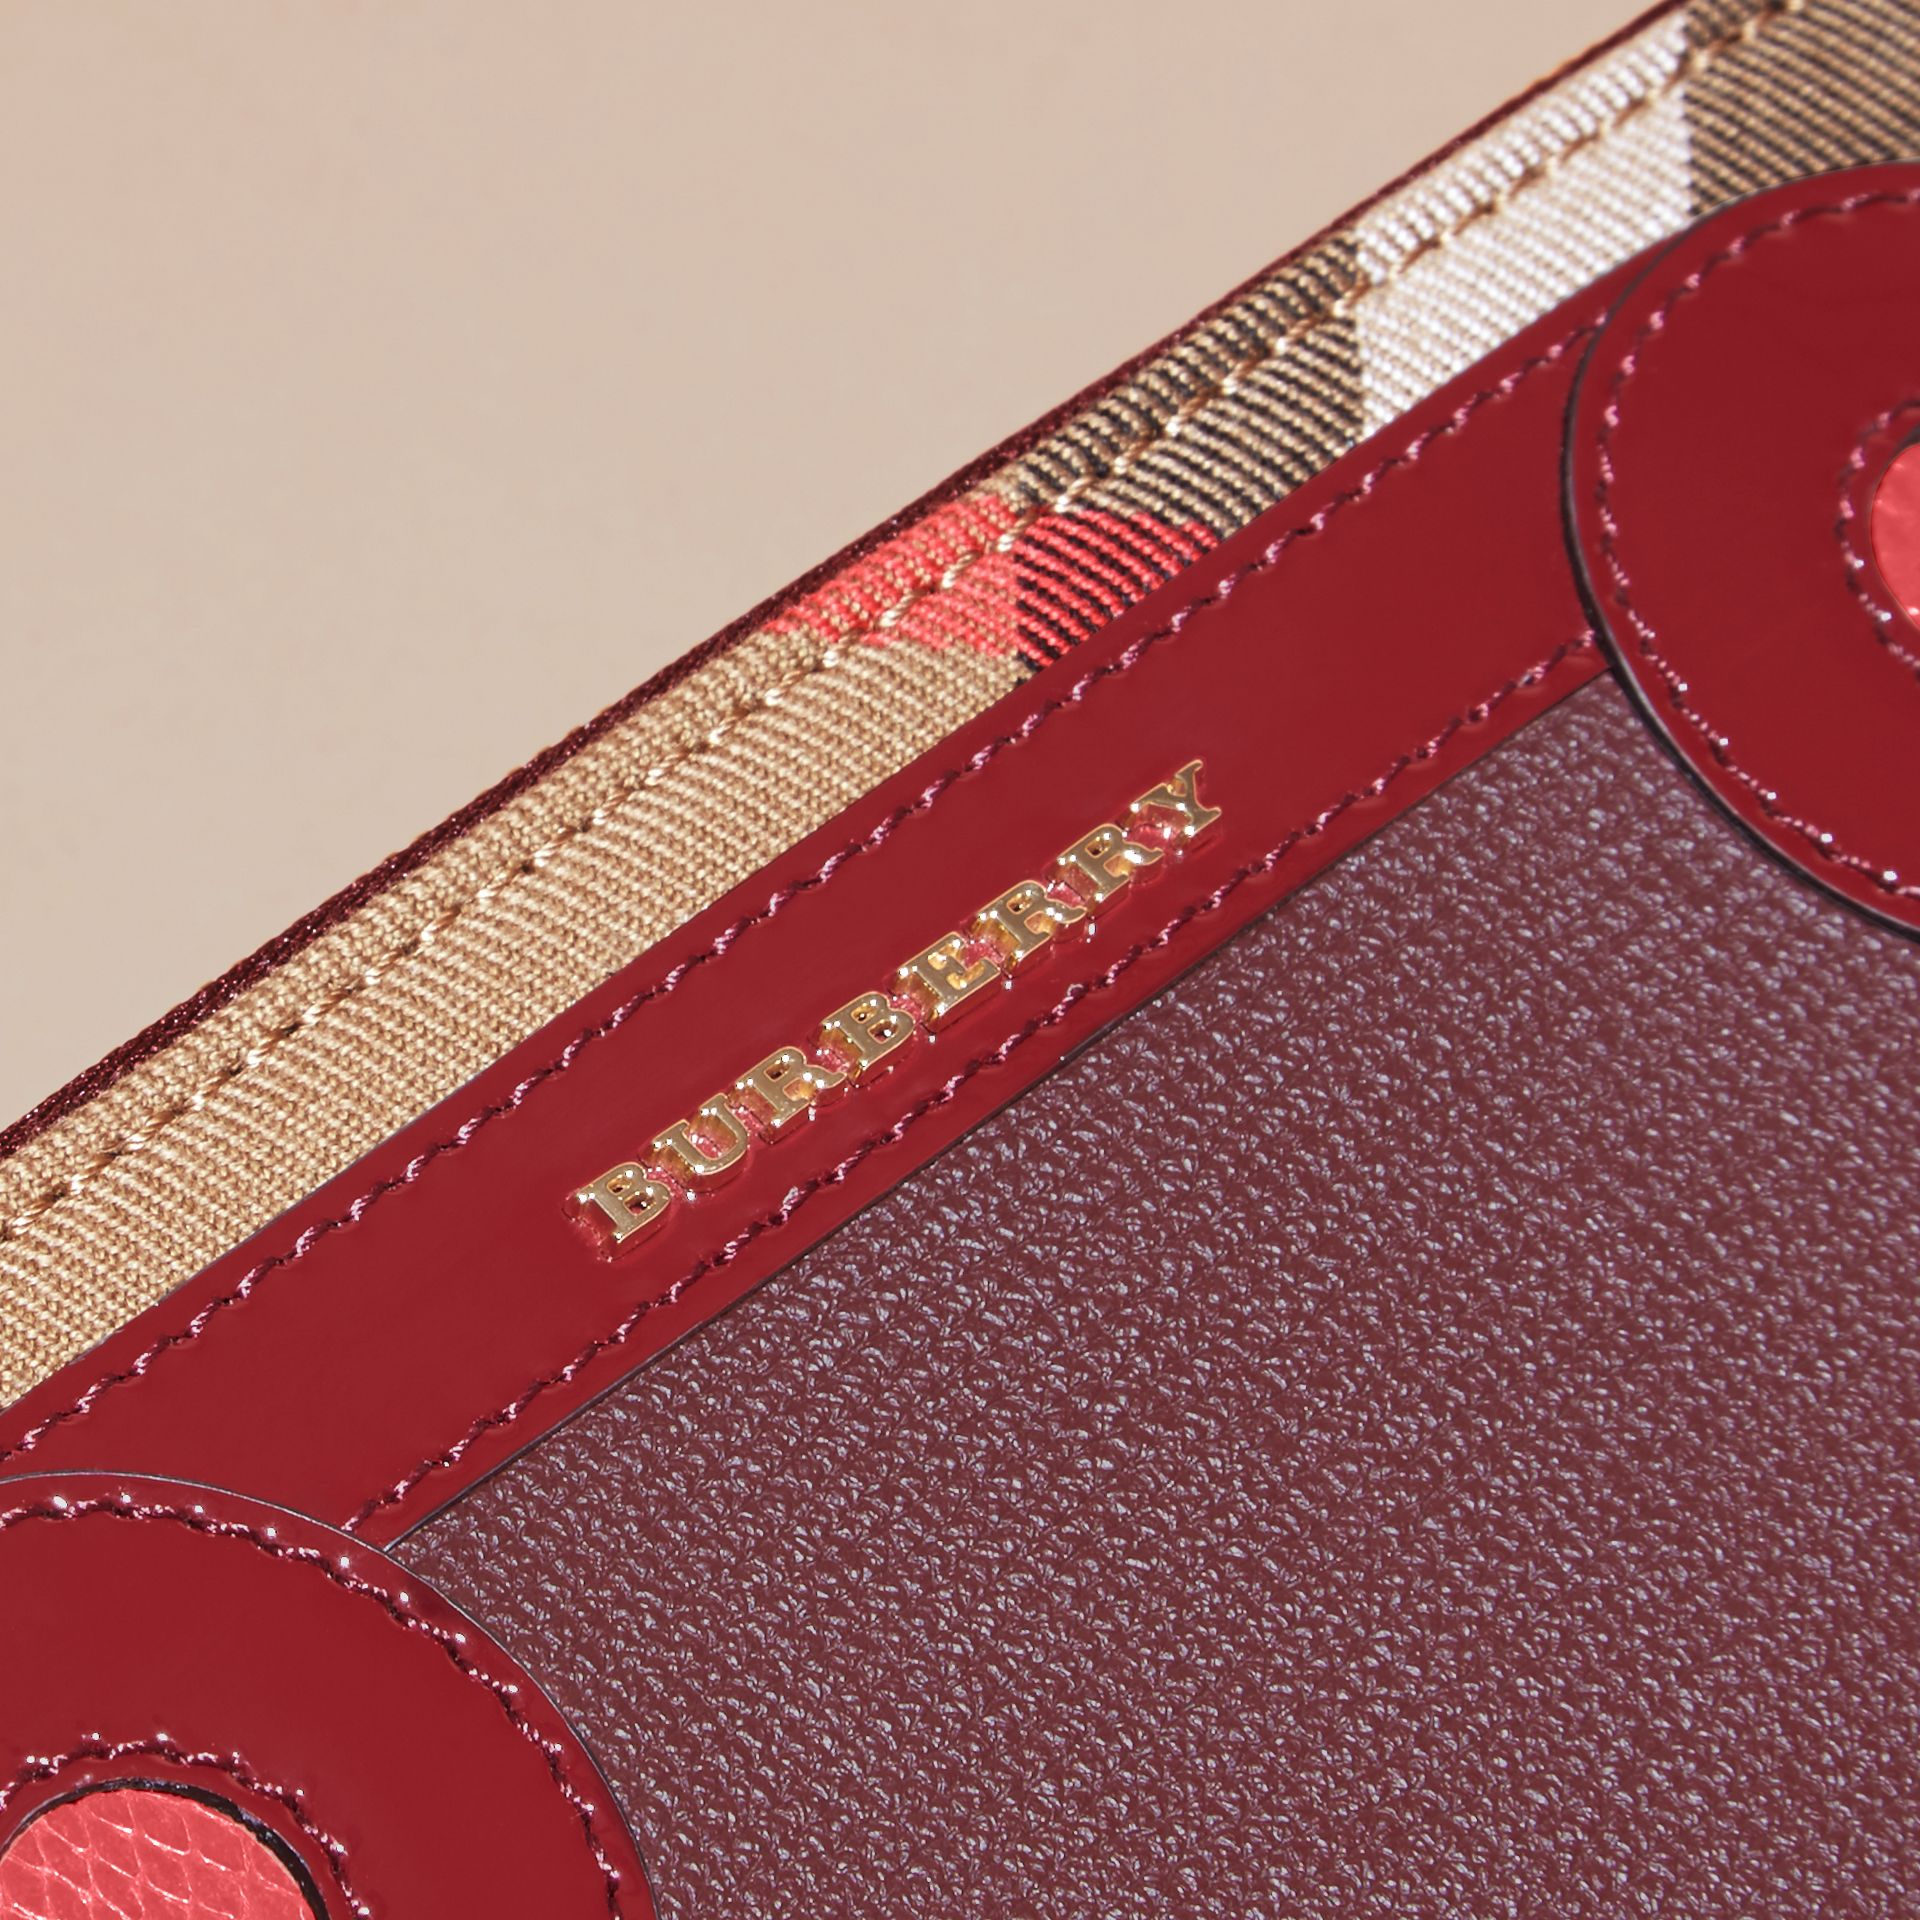 Mahogany red Snakeskin and House Check Ziparound Wallet Mahogany Red - gallery image 2